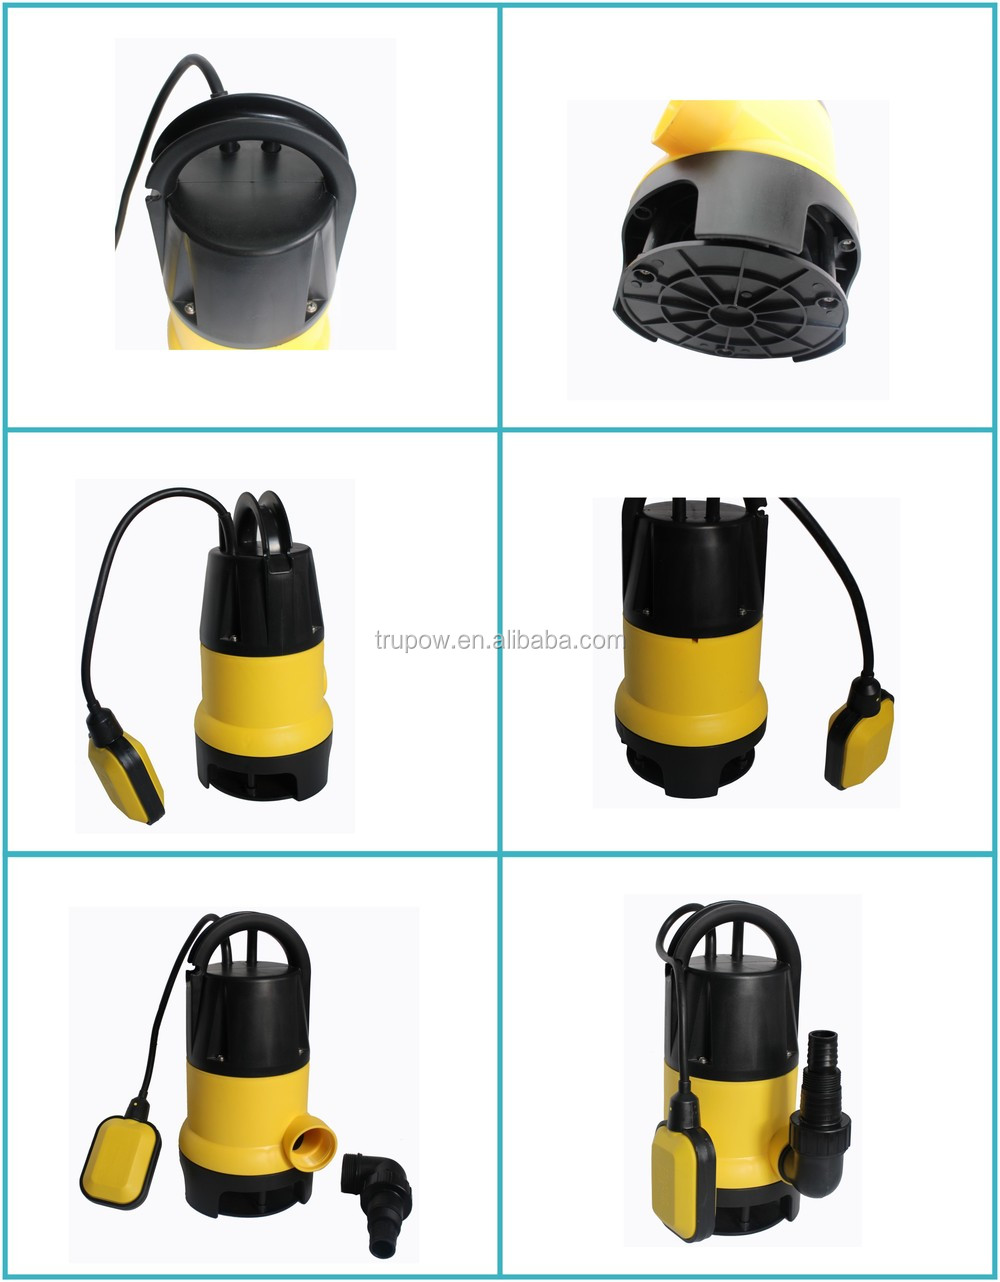 Fully Domestic Garden Submersible Drainage Pump